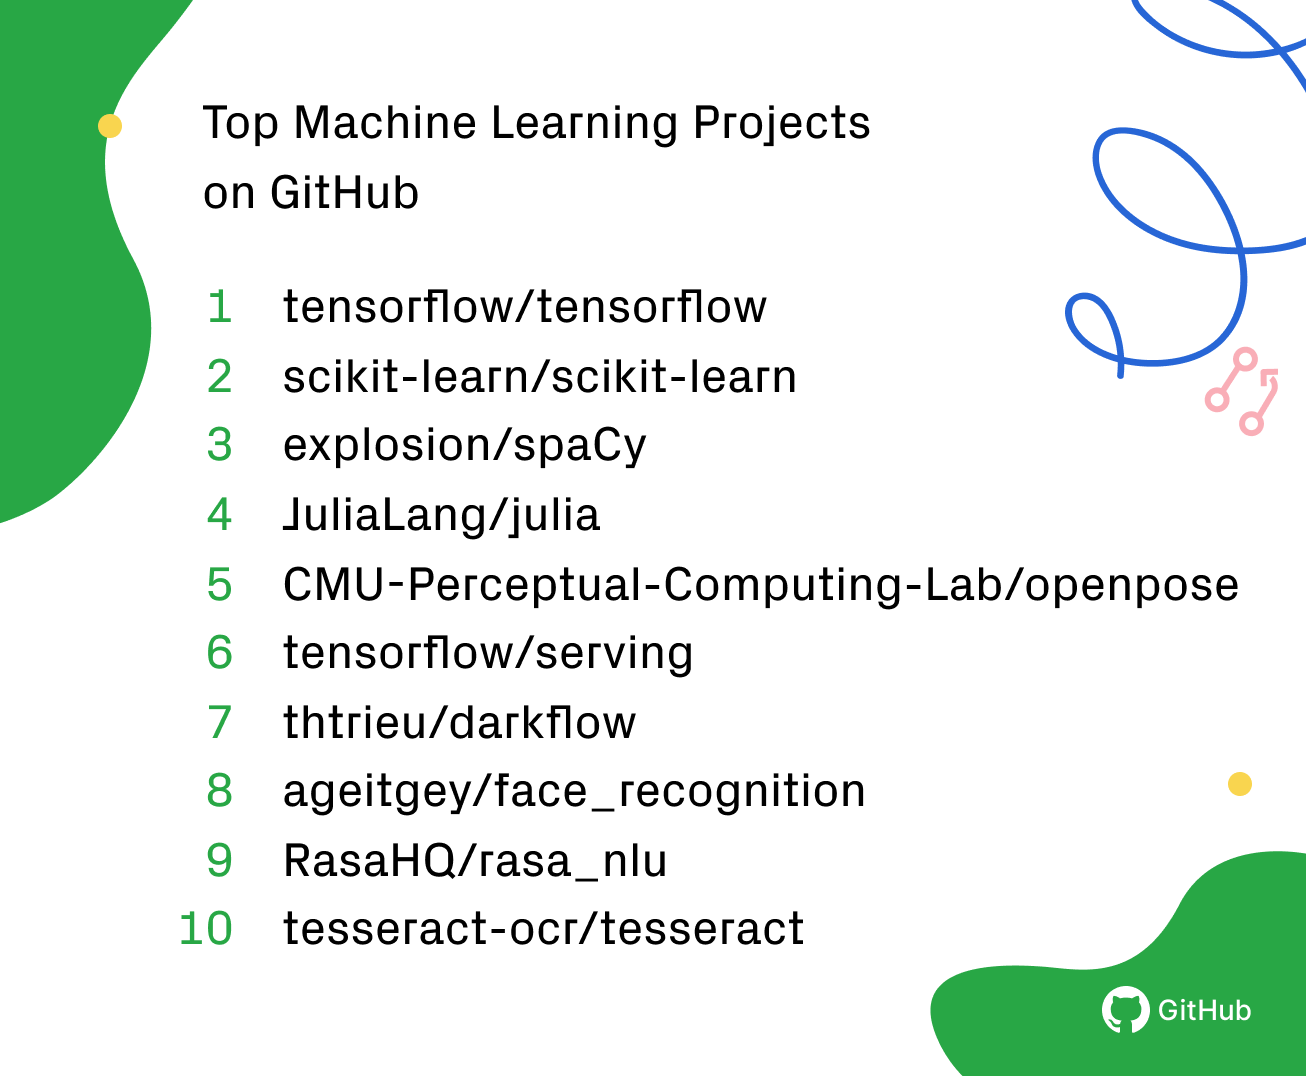 Top machine learning projects on GitHub for 2018